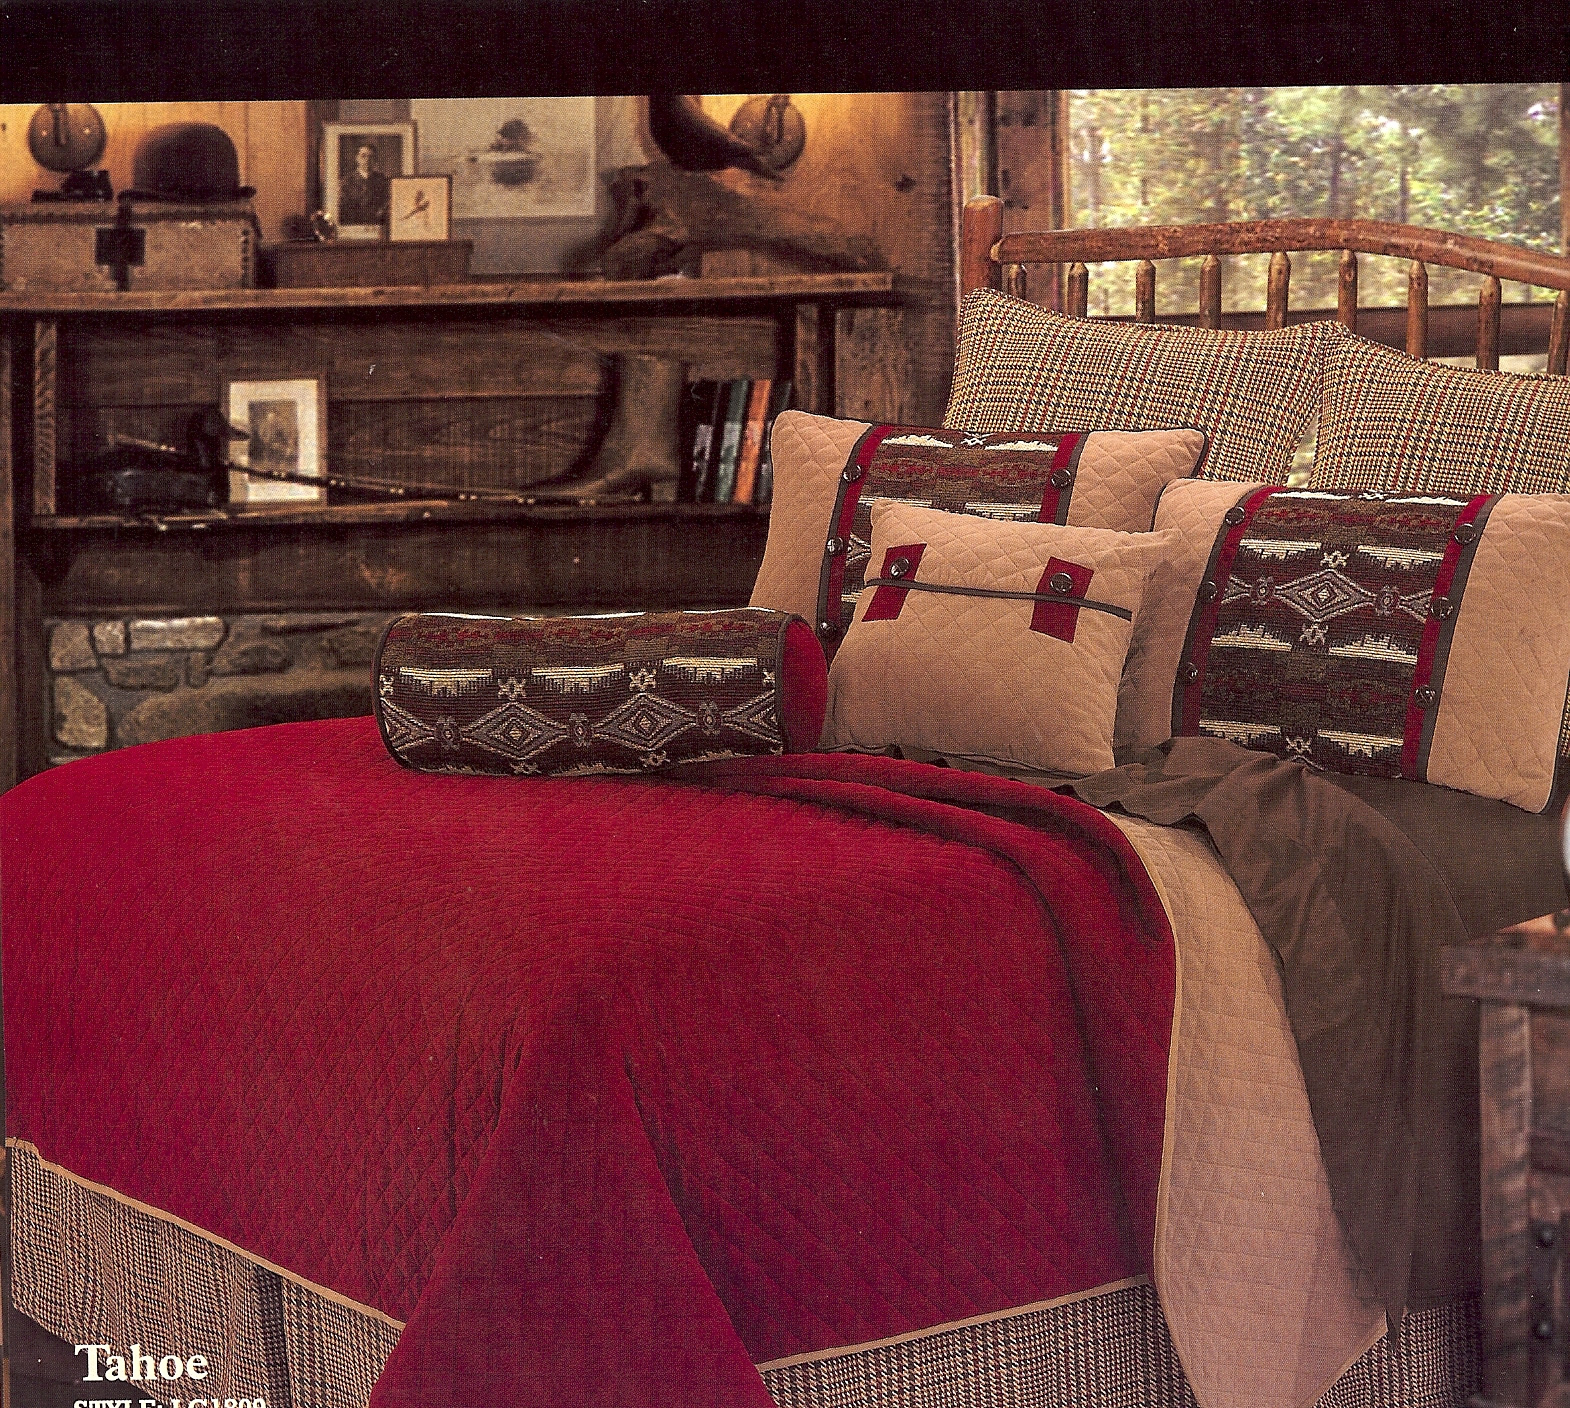 rental gallery view photo bedrooms cabins tour the cabin above comforters ridge bedroom interior blue clouds ga